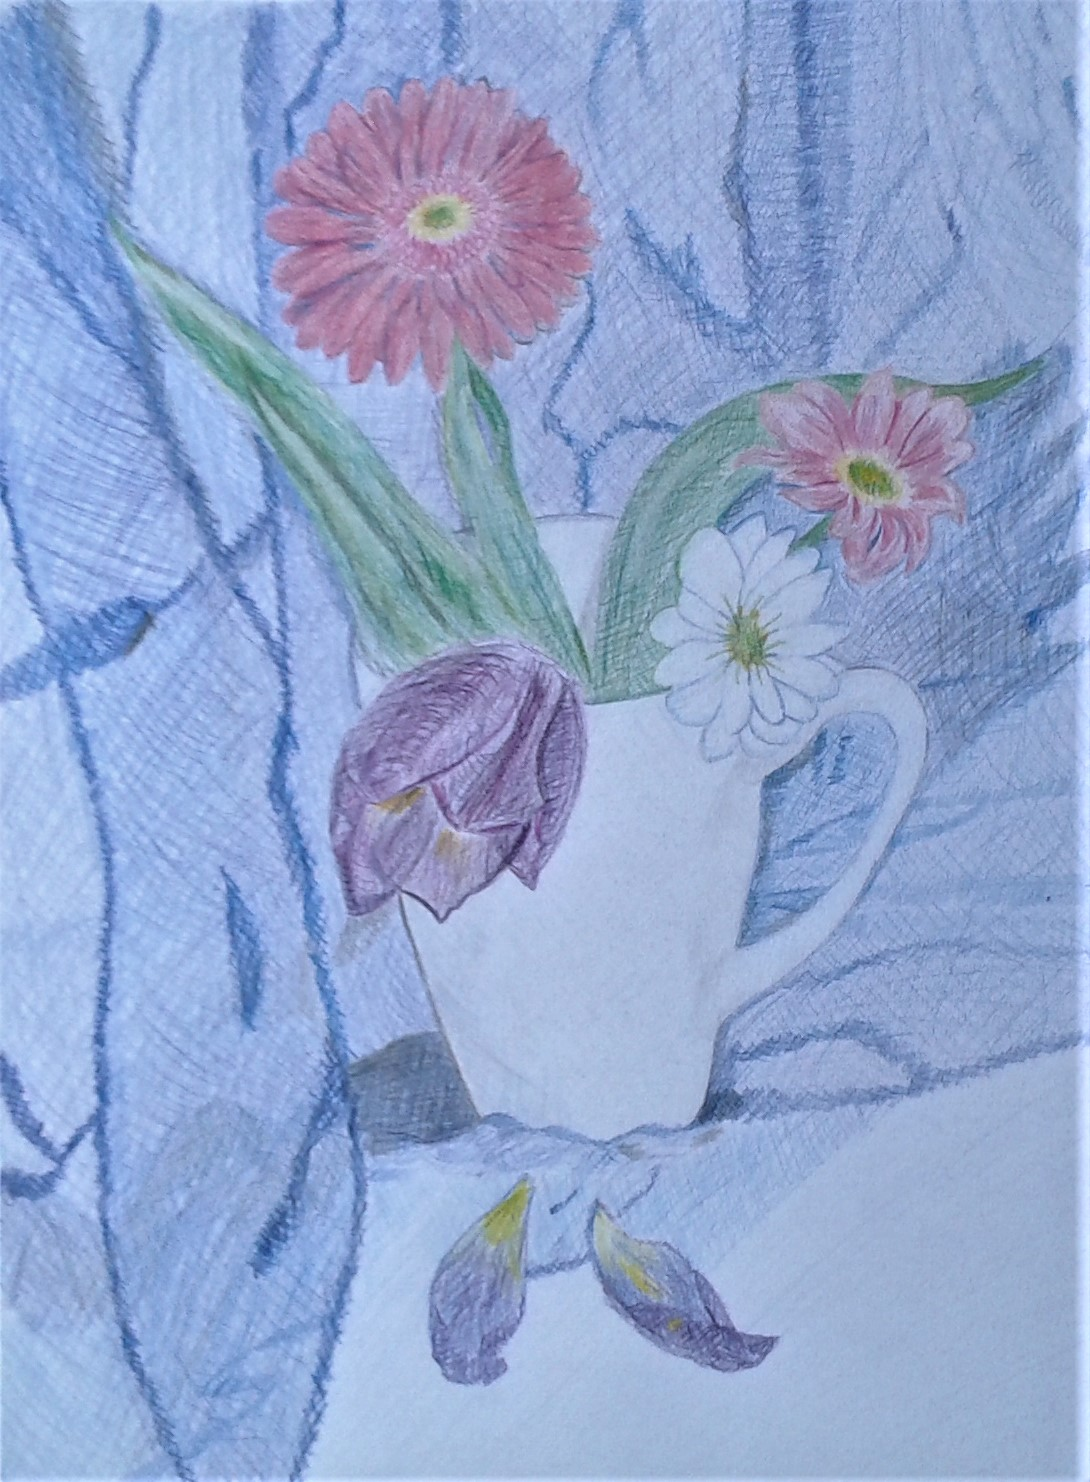 Floral Still Life created by a student at Raya's Art Studio in Kidderminster, Worcestershire